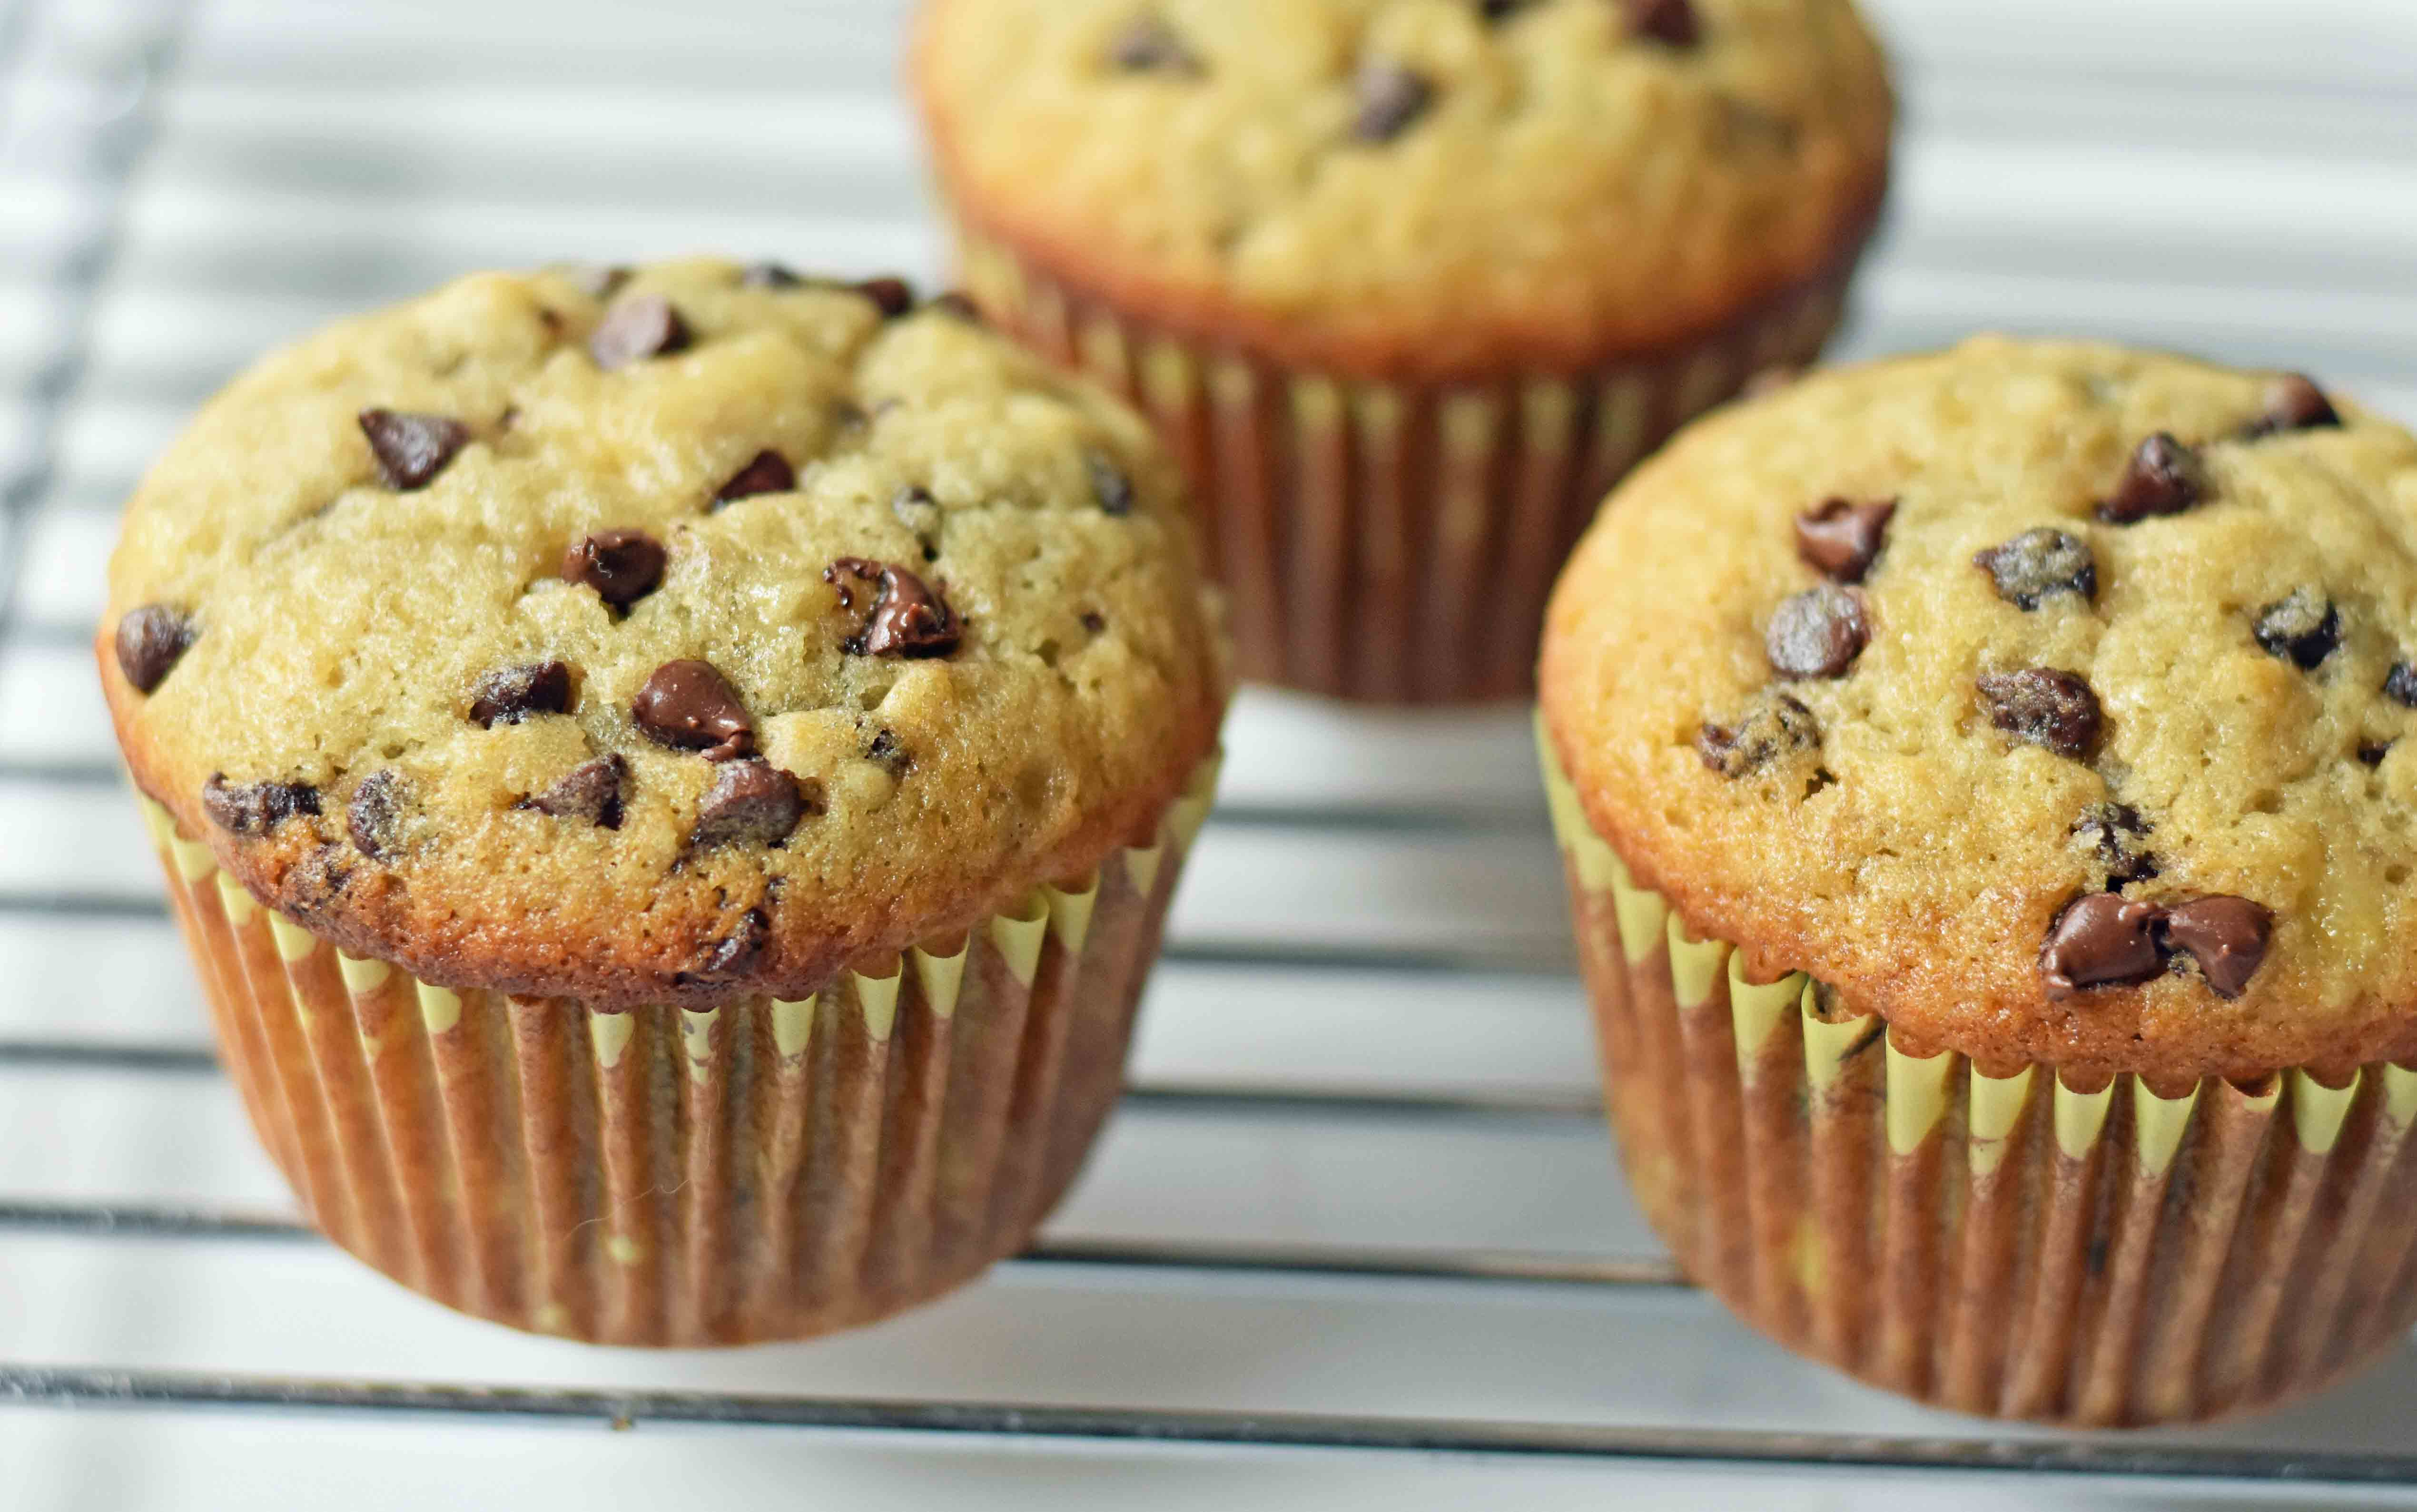 Chocolate Chip Banana Muffins. How to make homemade chocolate chip banana bread muffins from scratch. Moist and delicious and bursting with fresh banana flavor. www.modernhoney.com